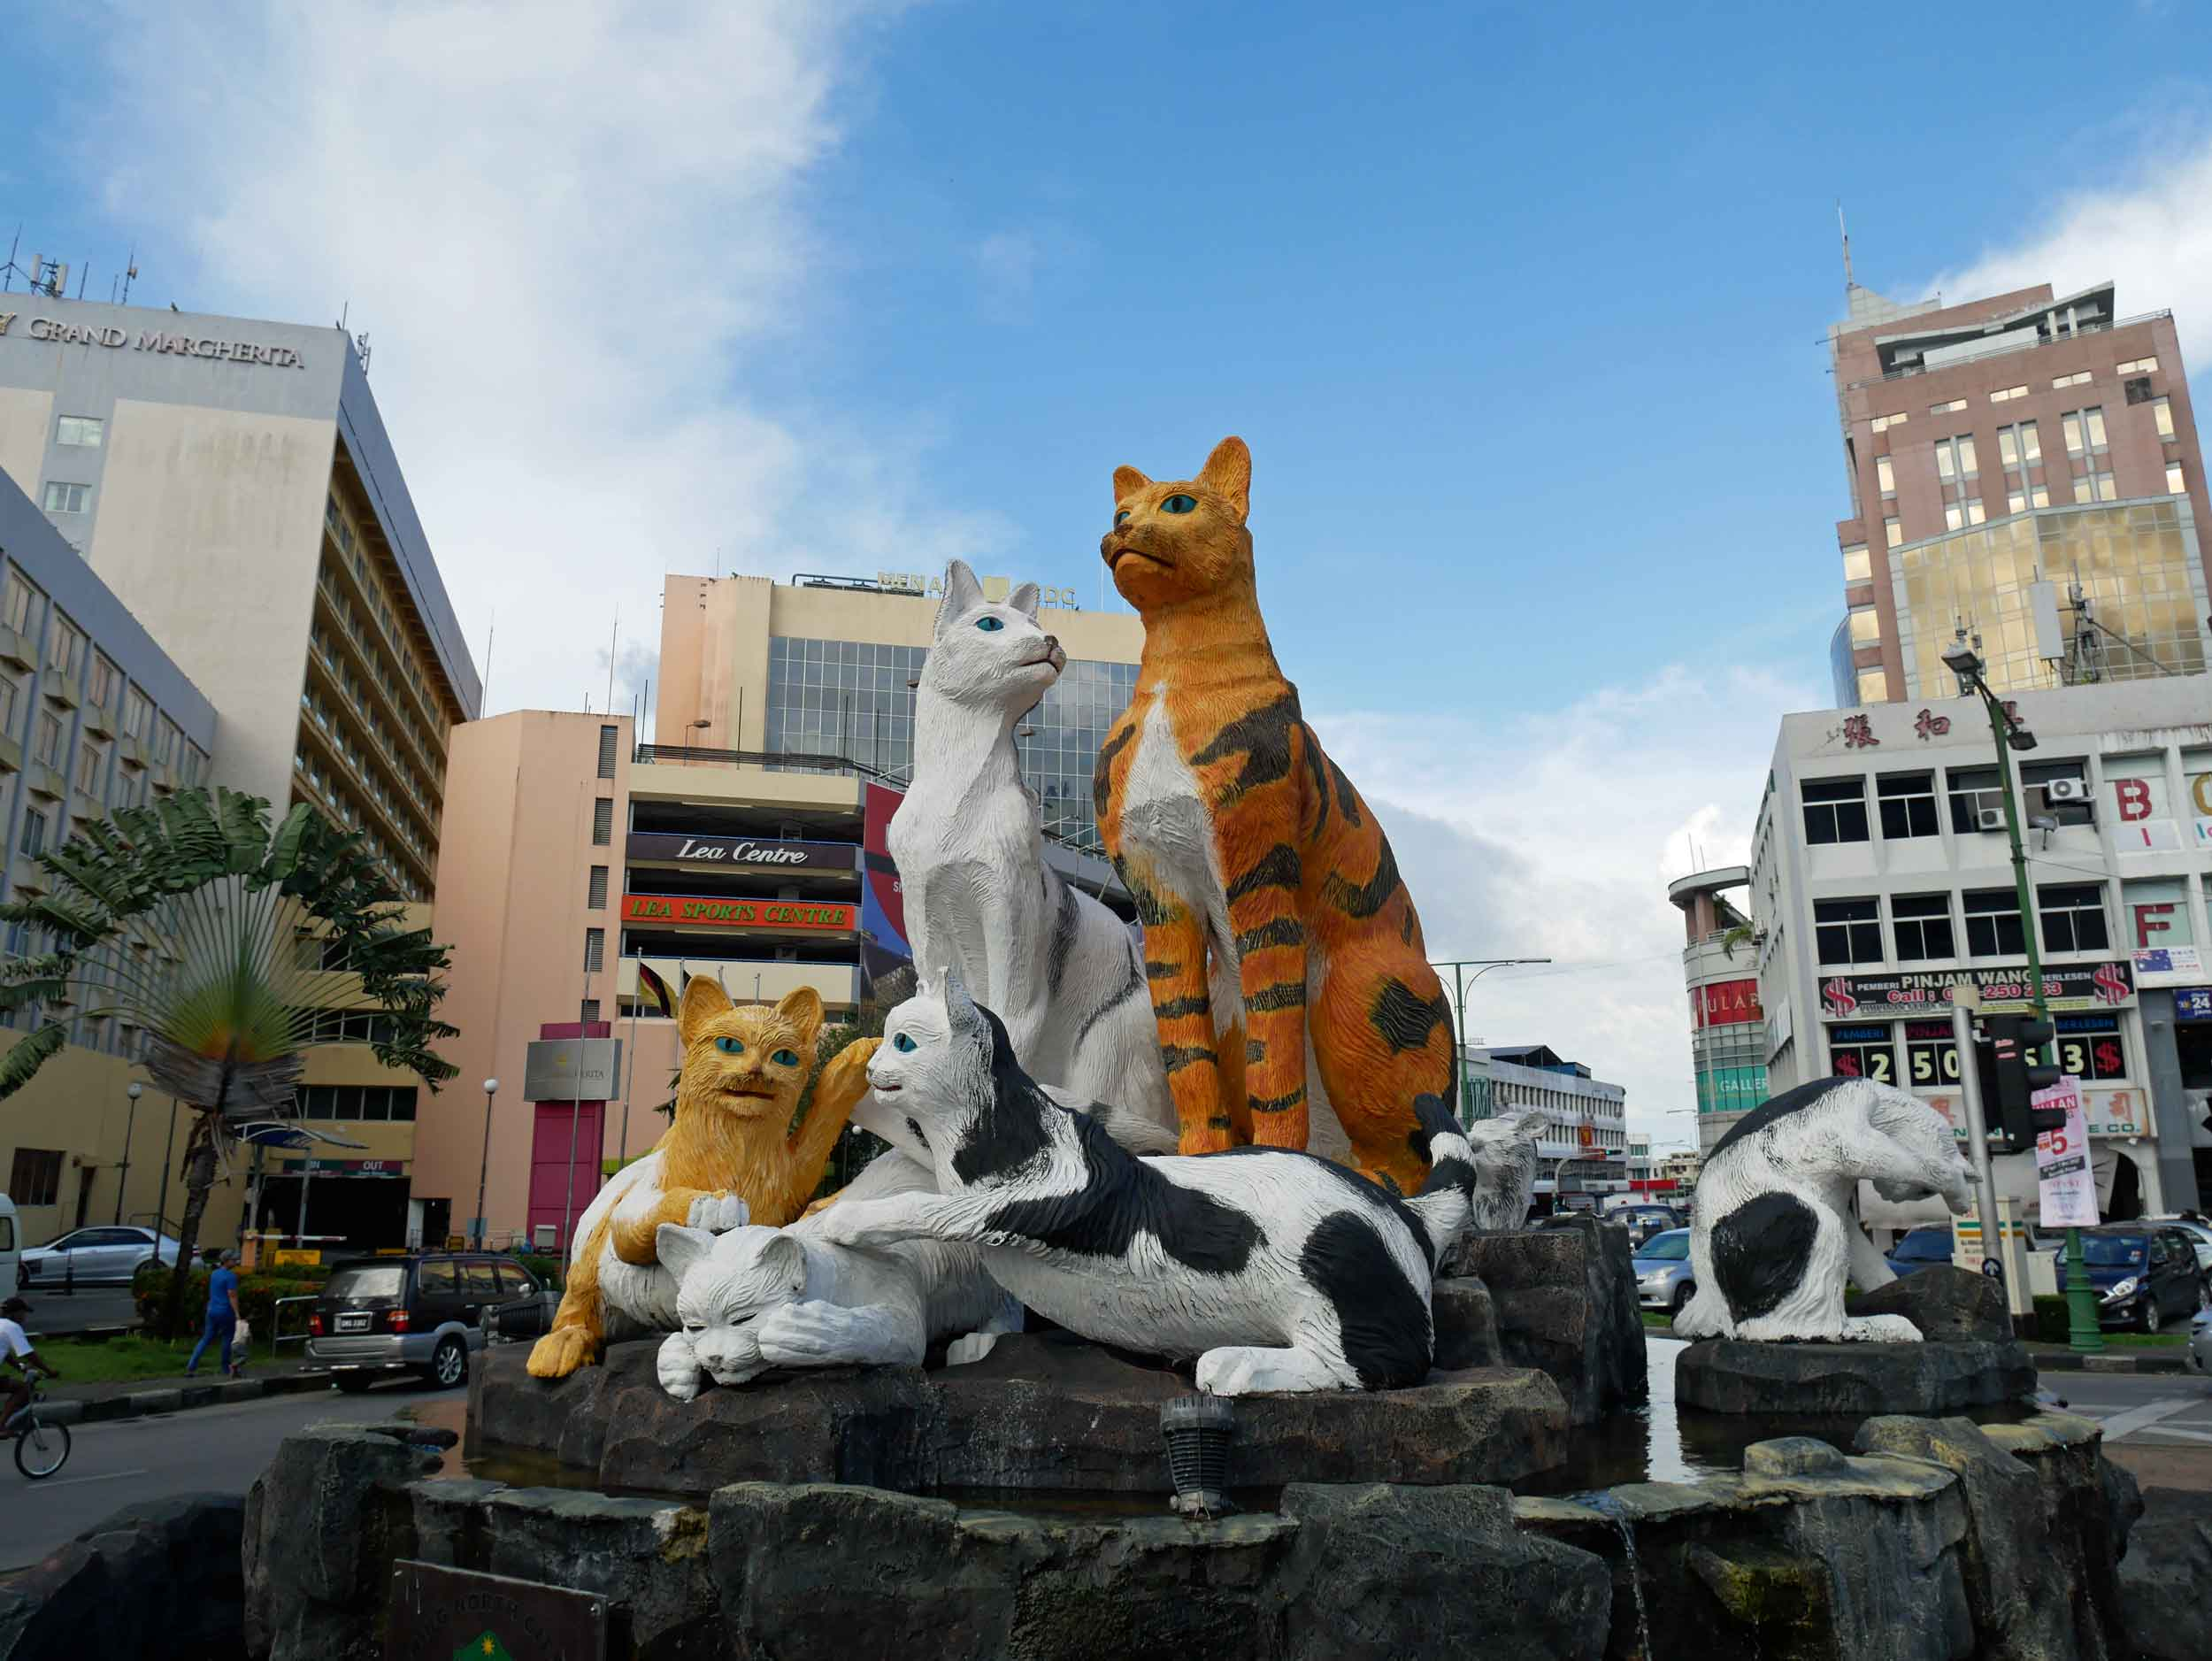 We arrived to the East Malaysian city of Kuching, which legend has it was named for all the cats around when the Brit and first white Rajah,James Brook, landed on Borneo in the early 1800s (May 1).